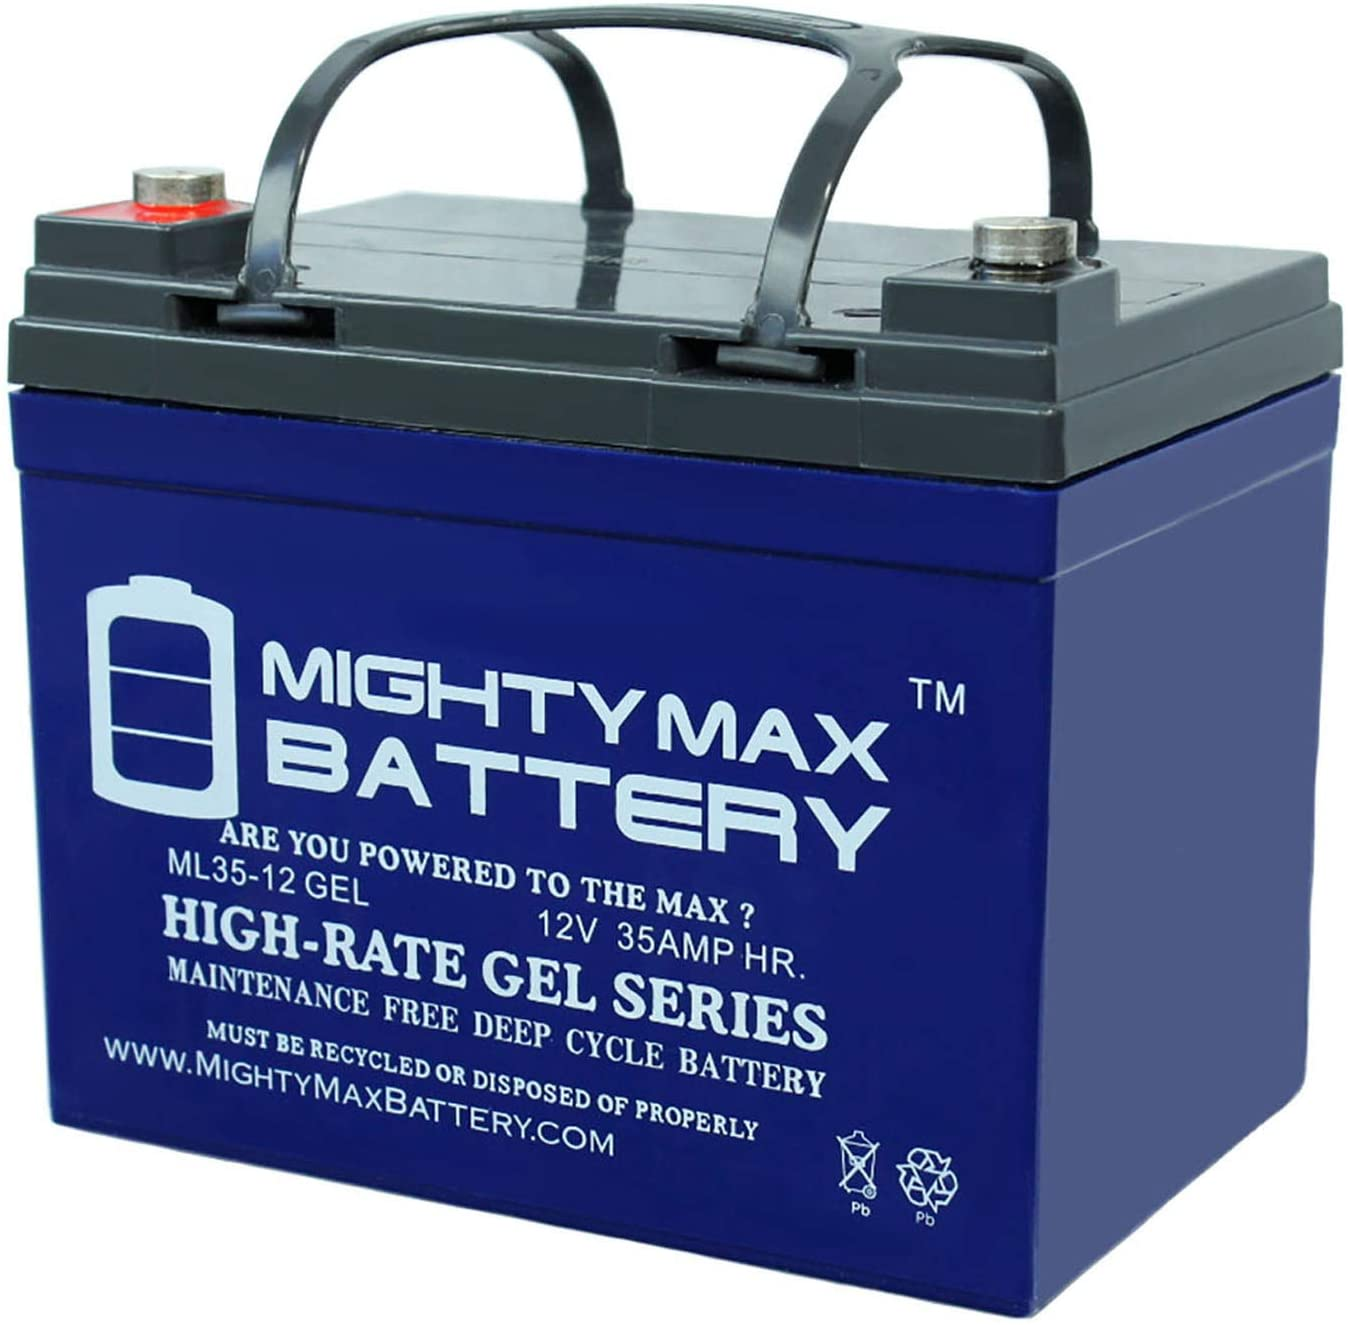 Mighty Max Battery 12V 35AH Gel Battery for Pride Mobility Jazzy 1103 Wheelchair Brand Product